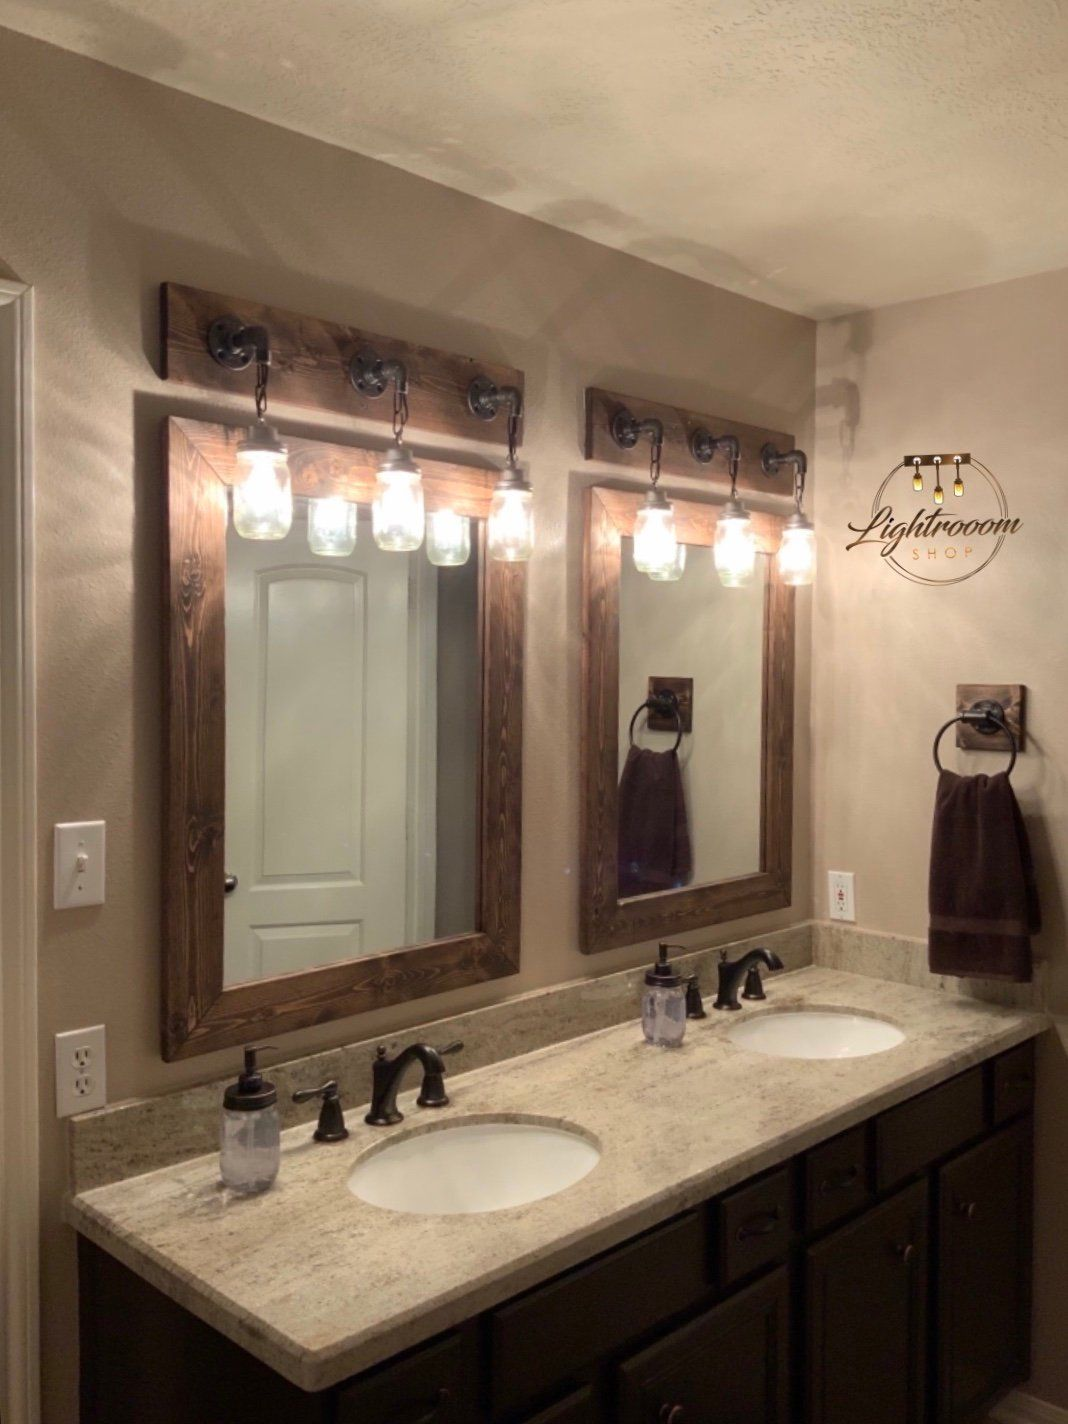 Dark Walnut Mirror Framed Mirror Rustic Wood Bathroom Mirror Wall Mirror Vanity Mirror Lar Bathroom Mirrors Diy Wood Mirror Bathroom Bathroom Mirror Frame